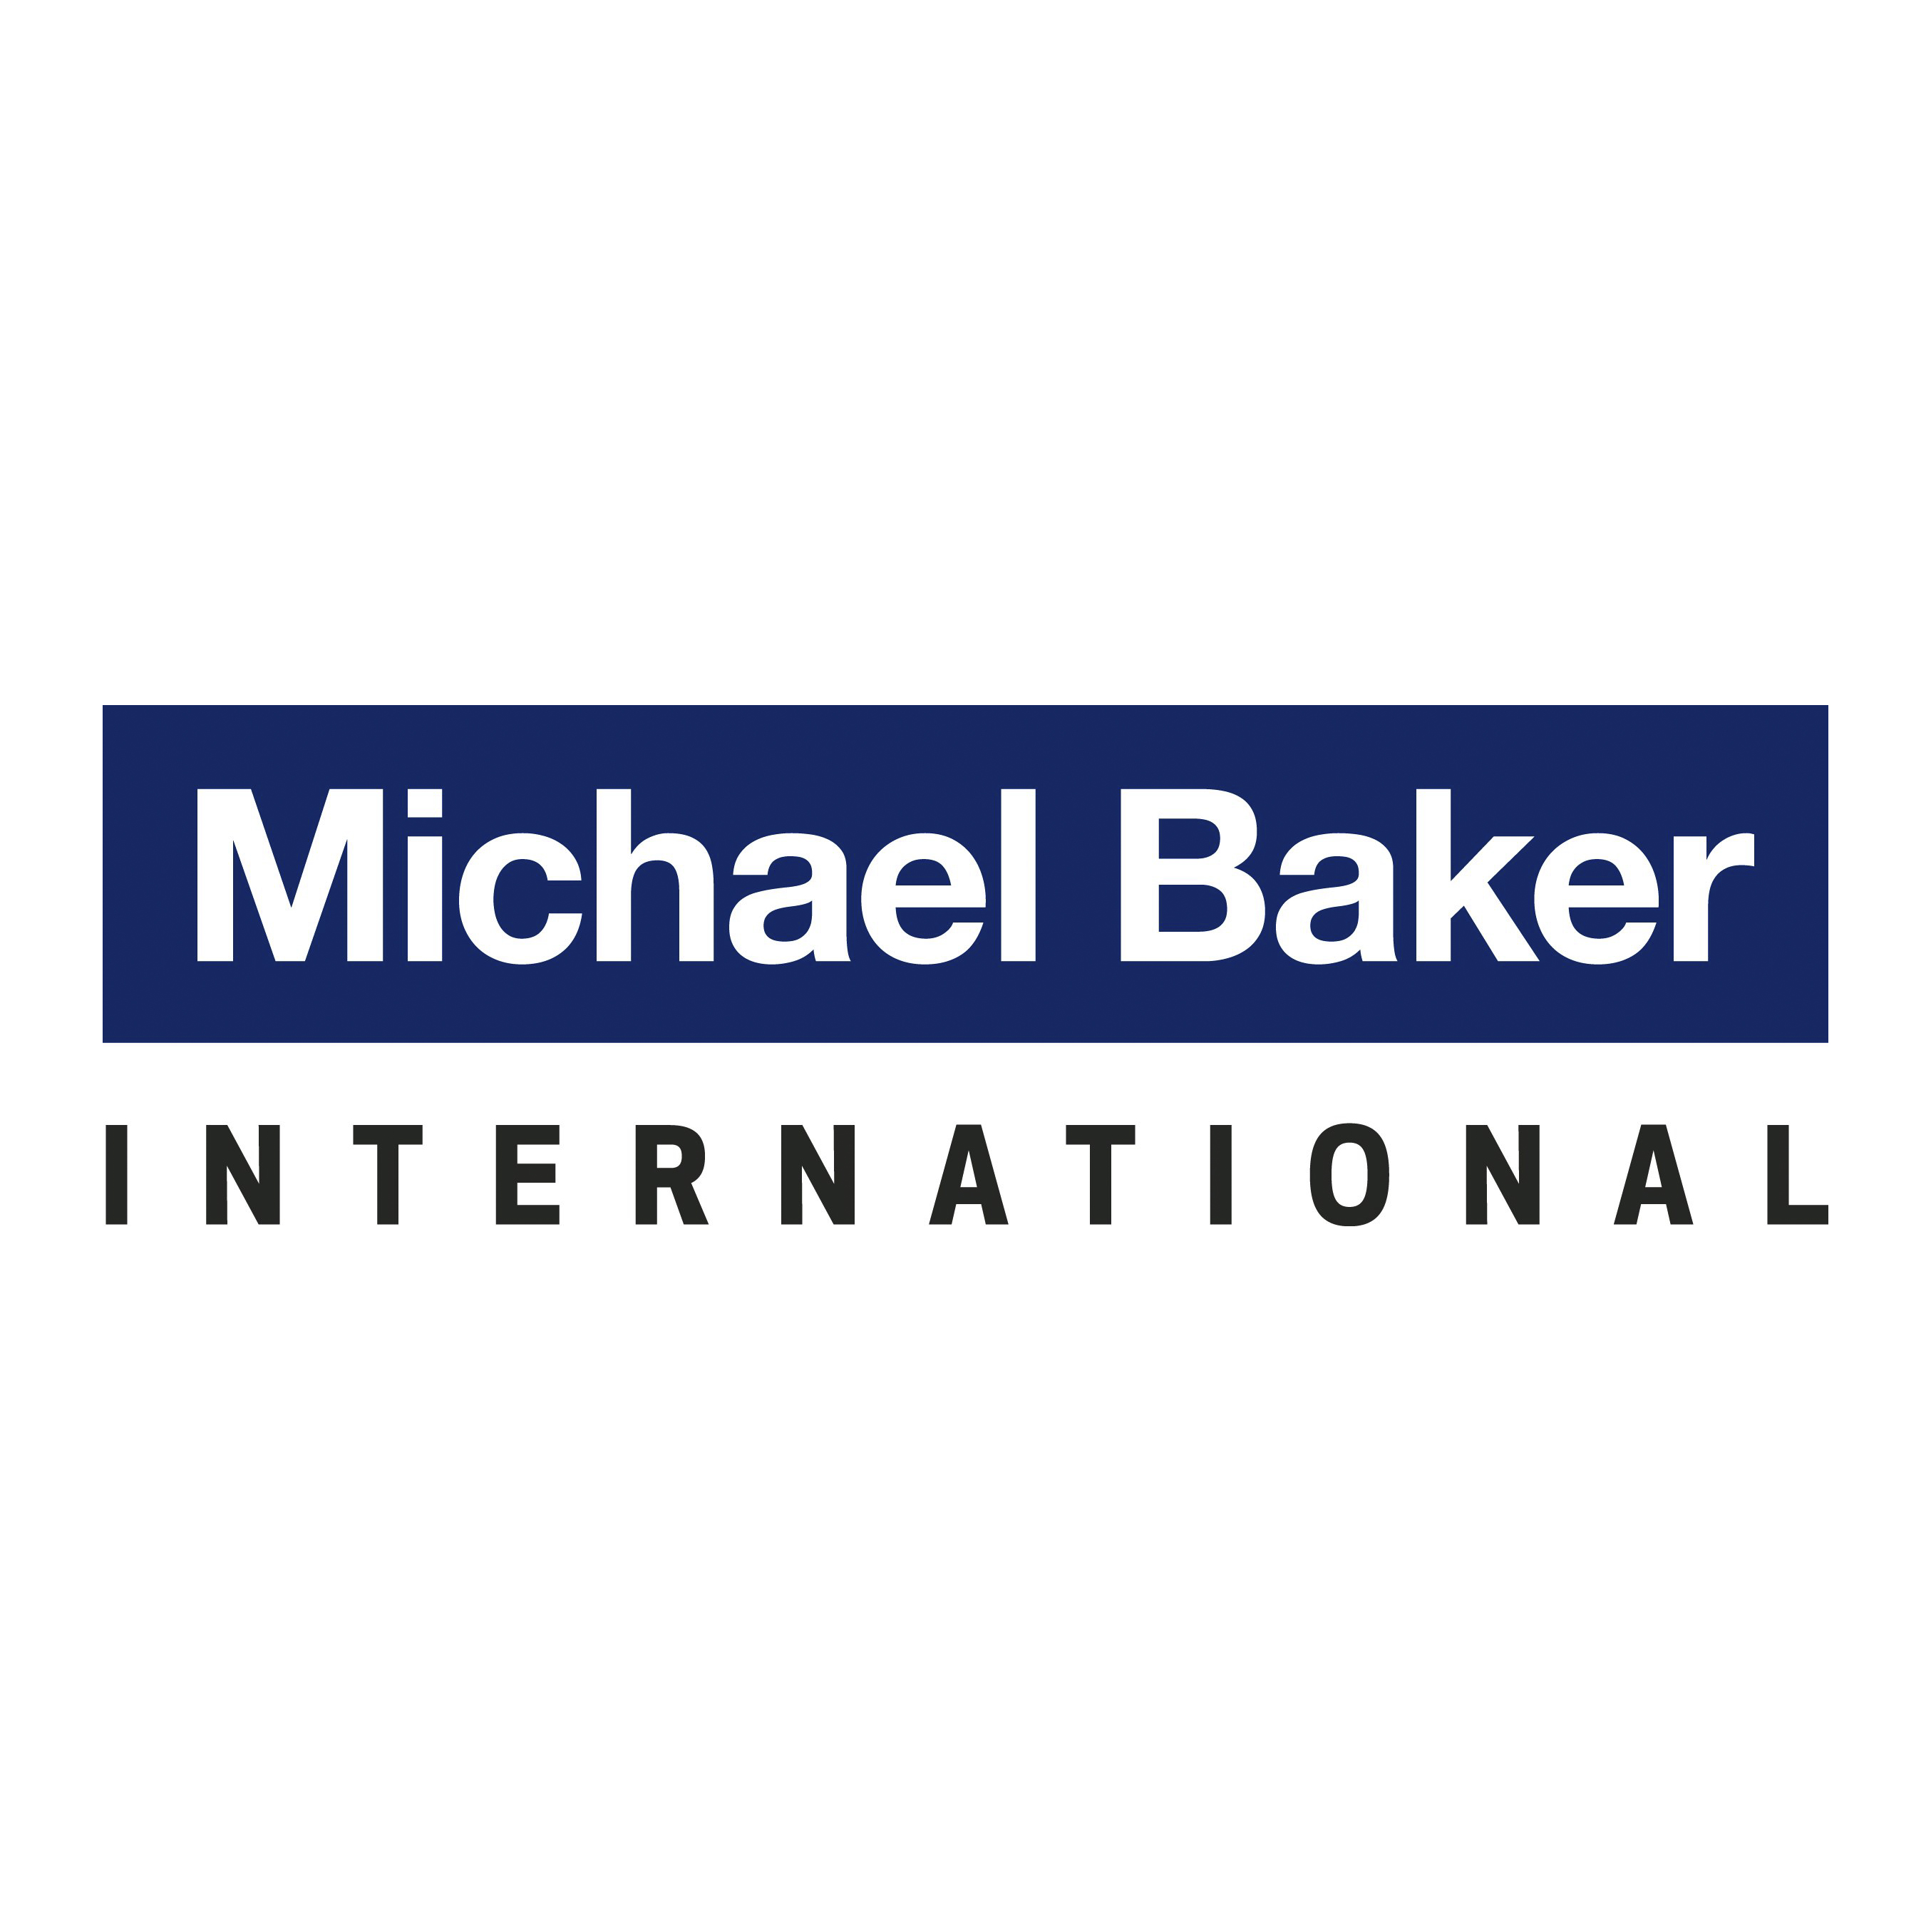 Michael Baker International copy